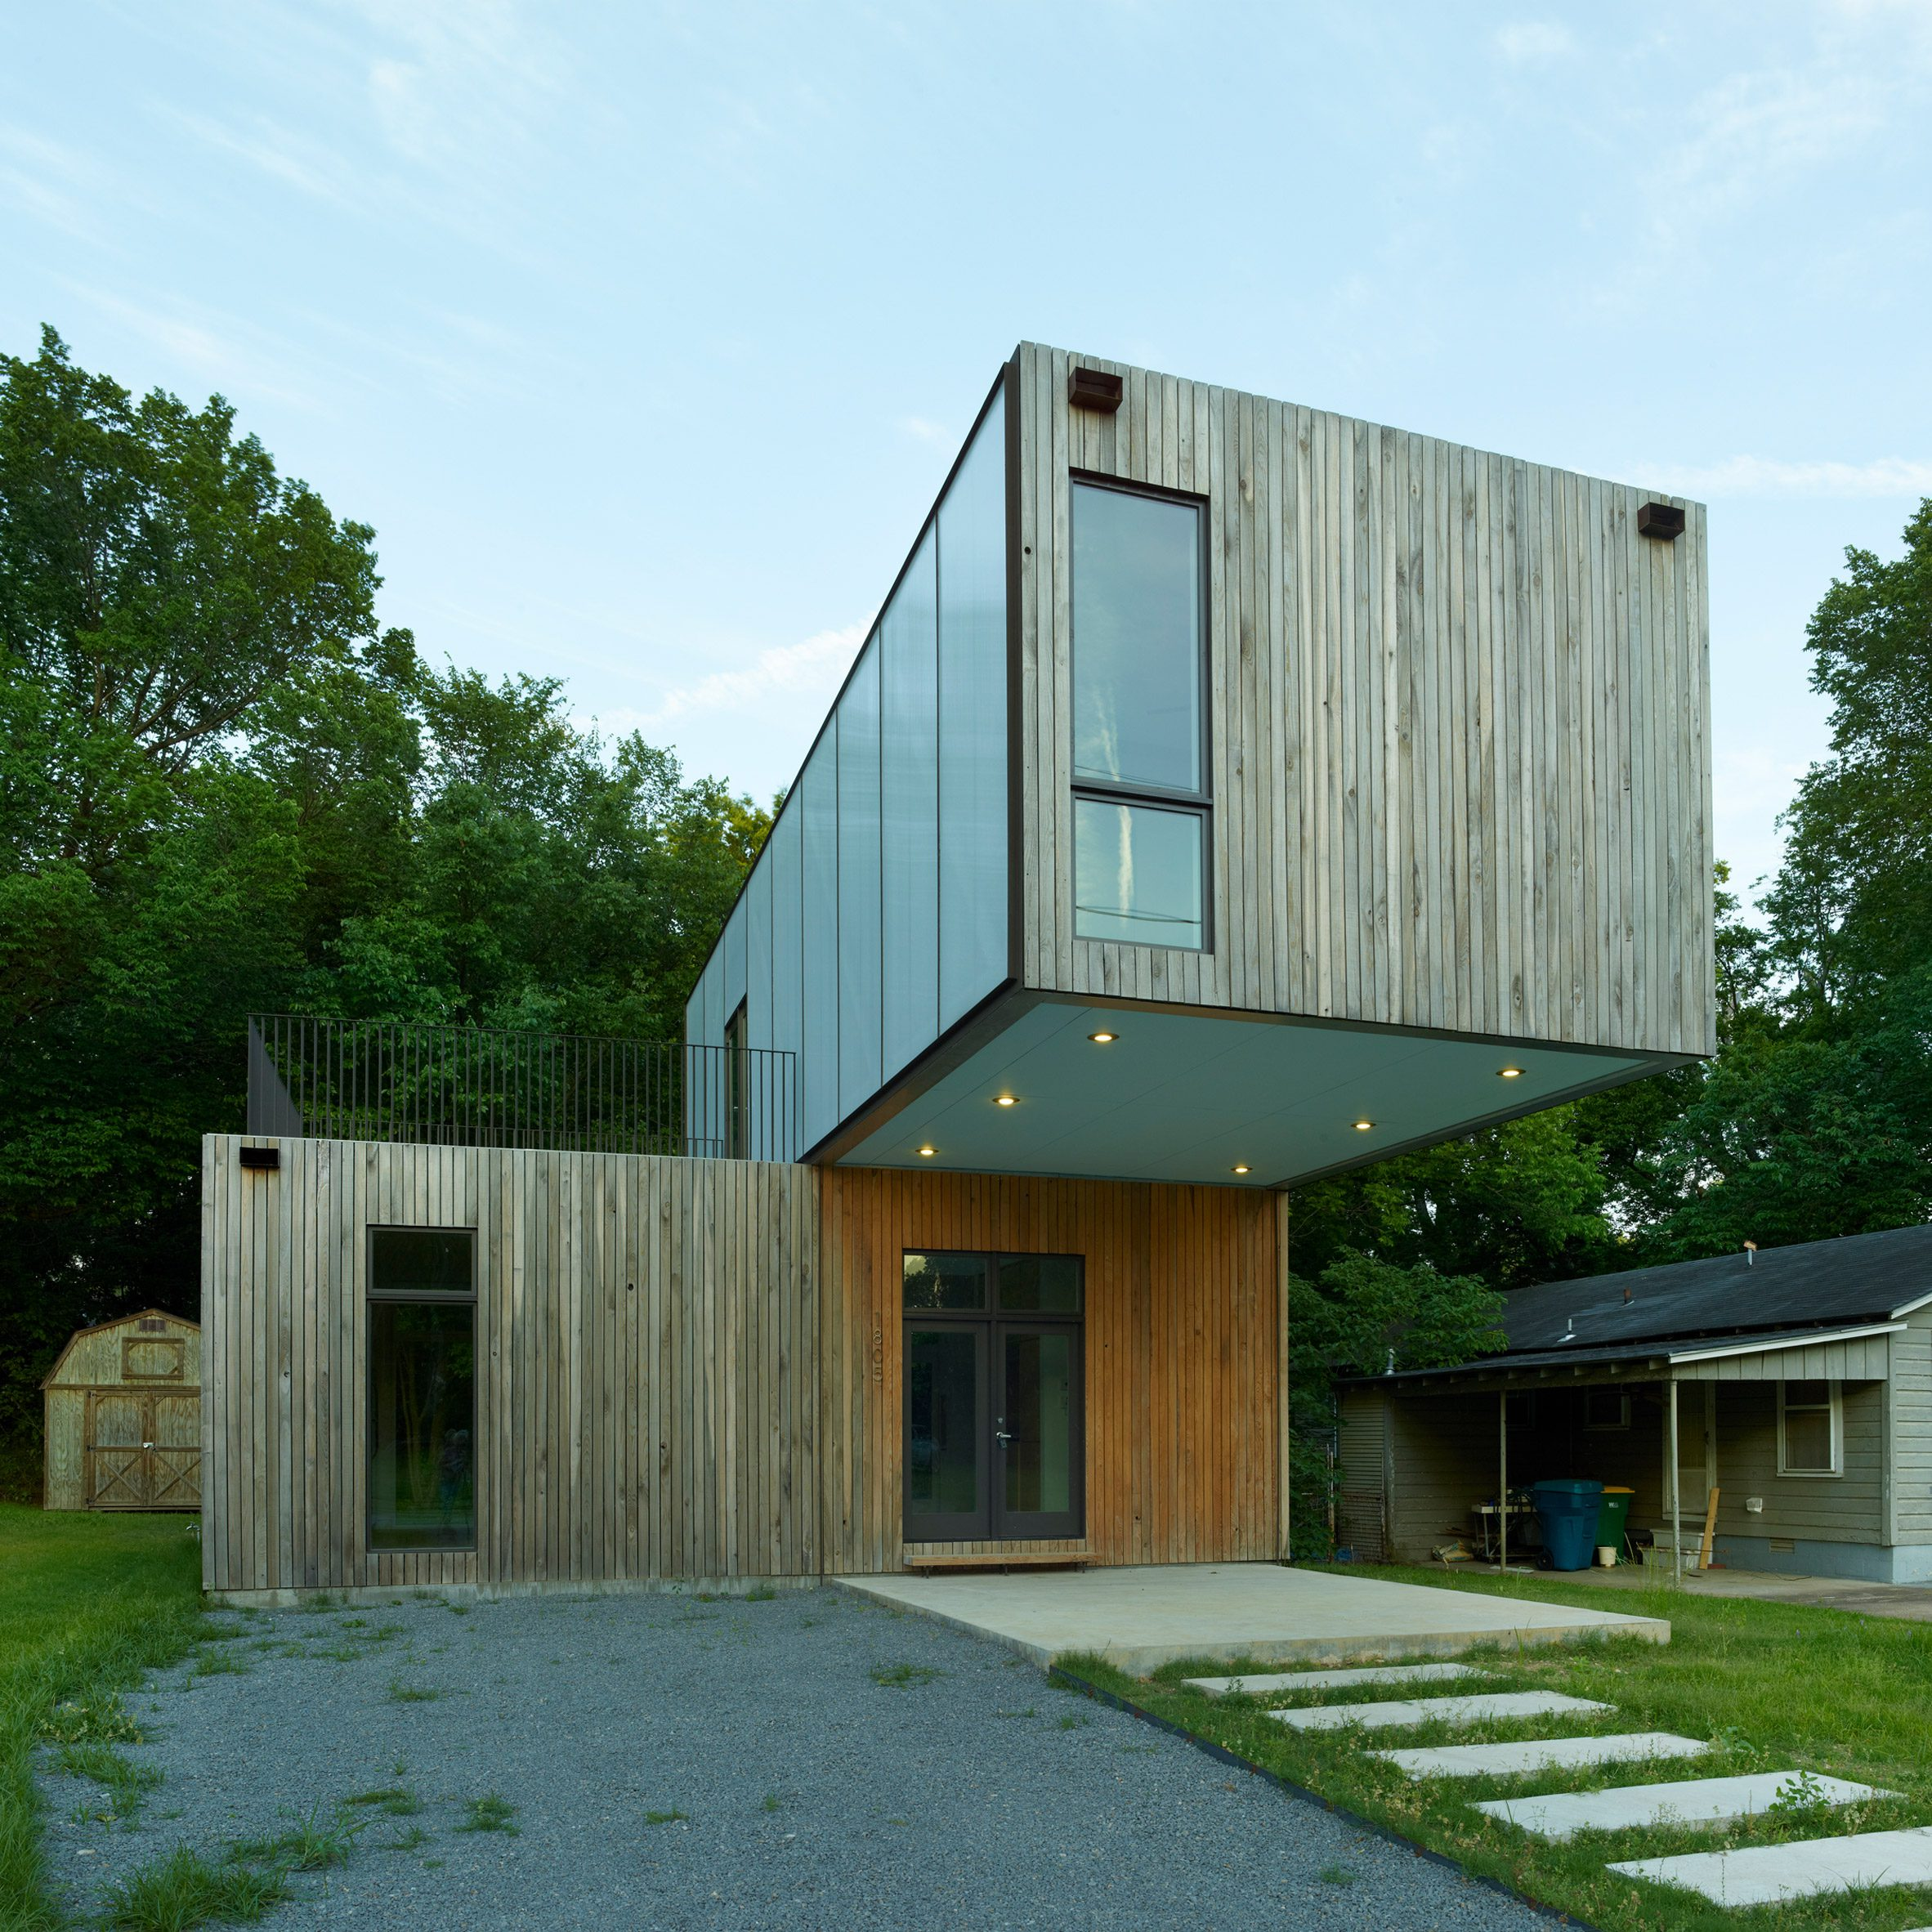 This house was designed by students in Arkansas